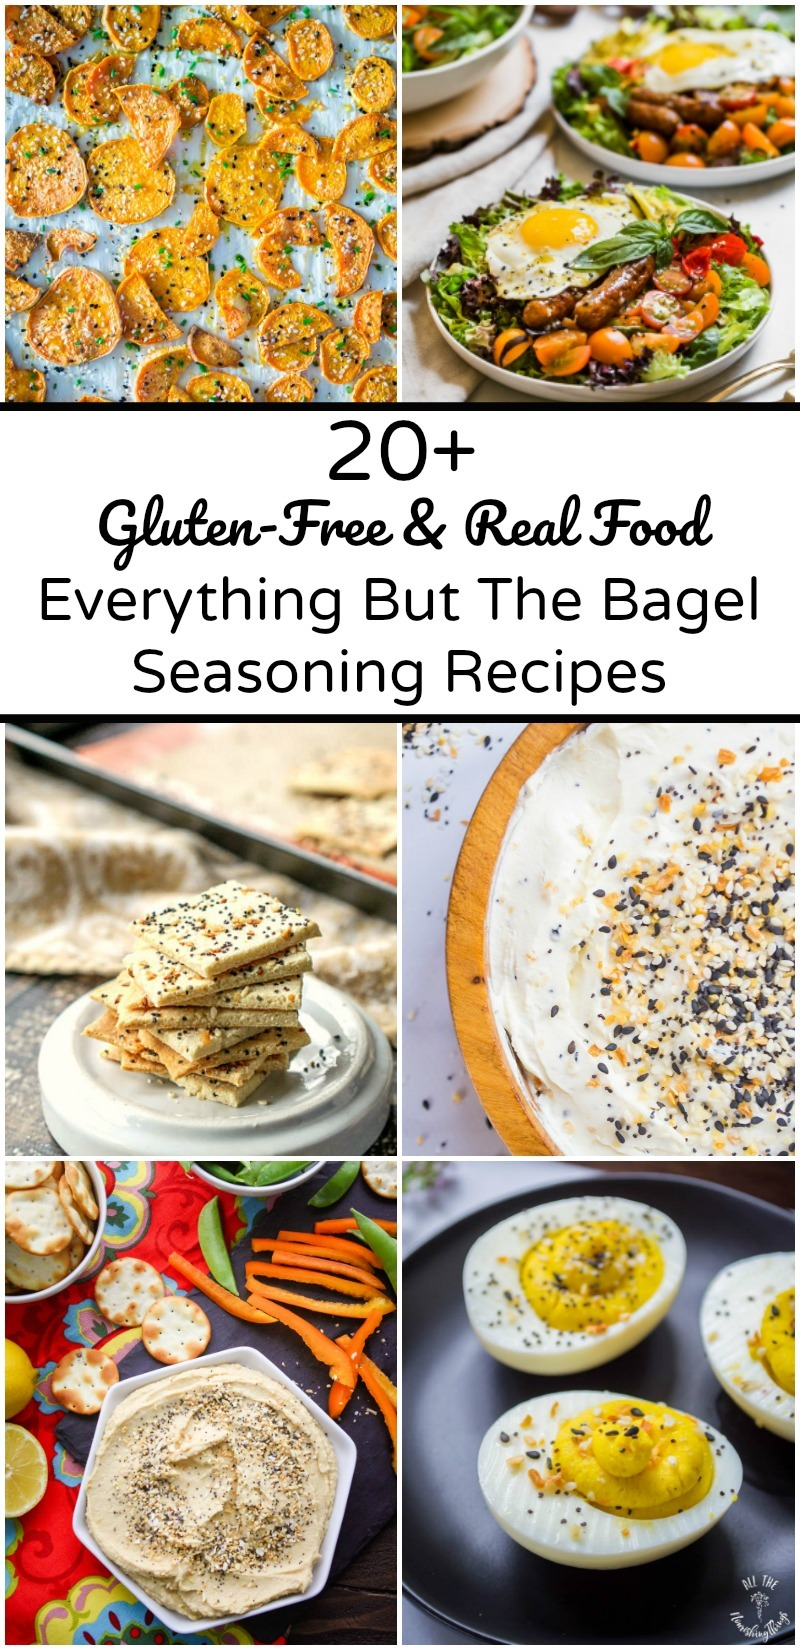 6 images of gluten-free everything but the bagel seasoning recipes with text overlay between the images